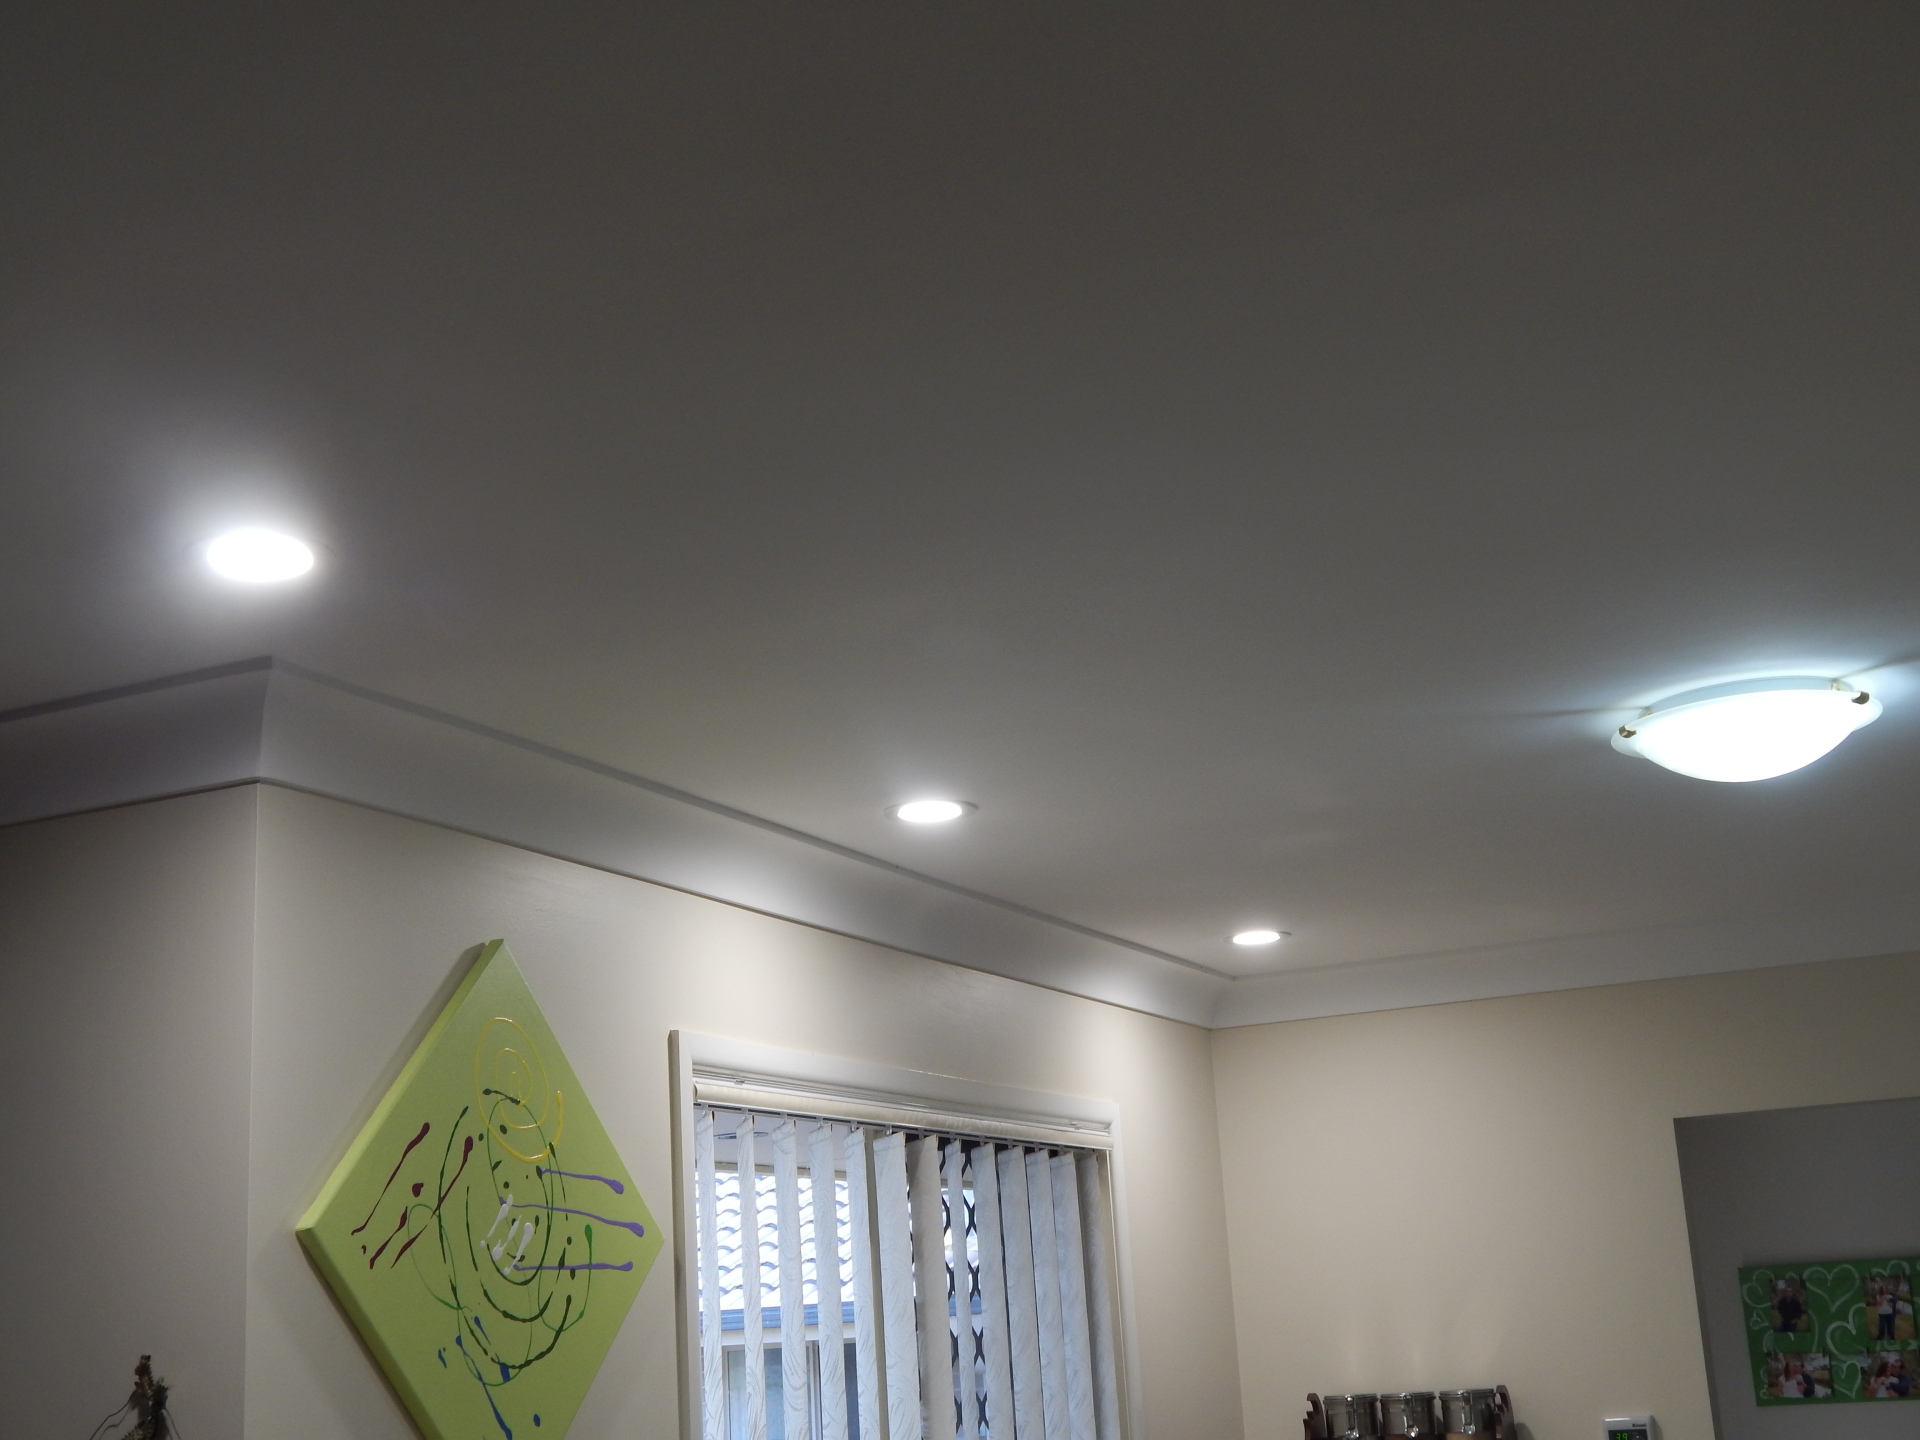 New LED downlights